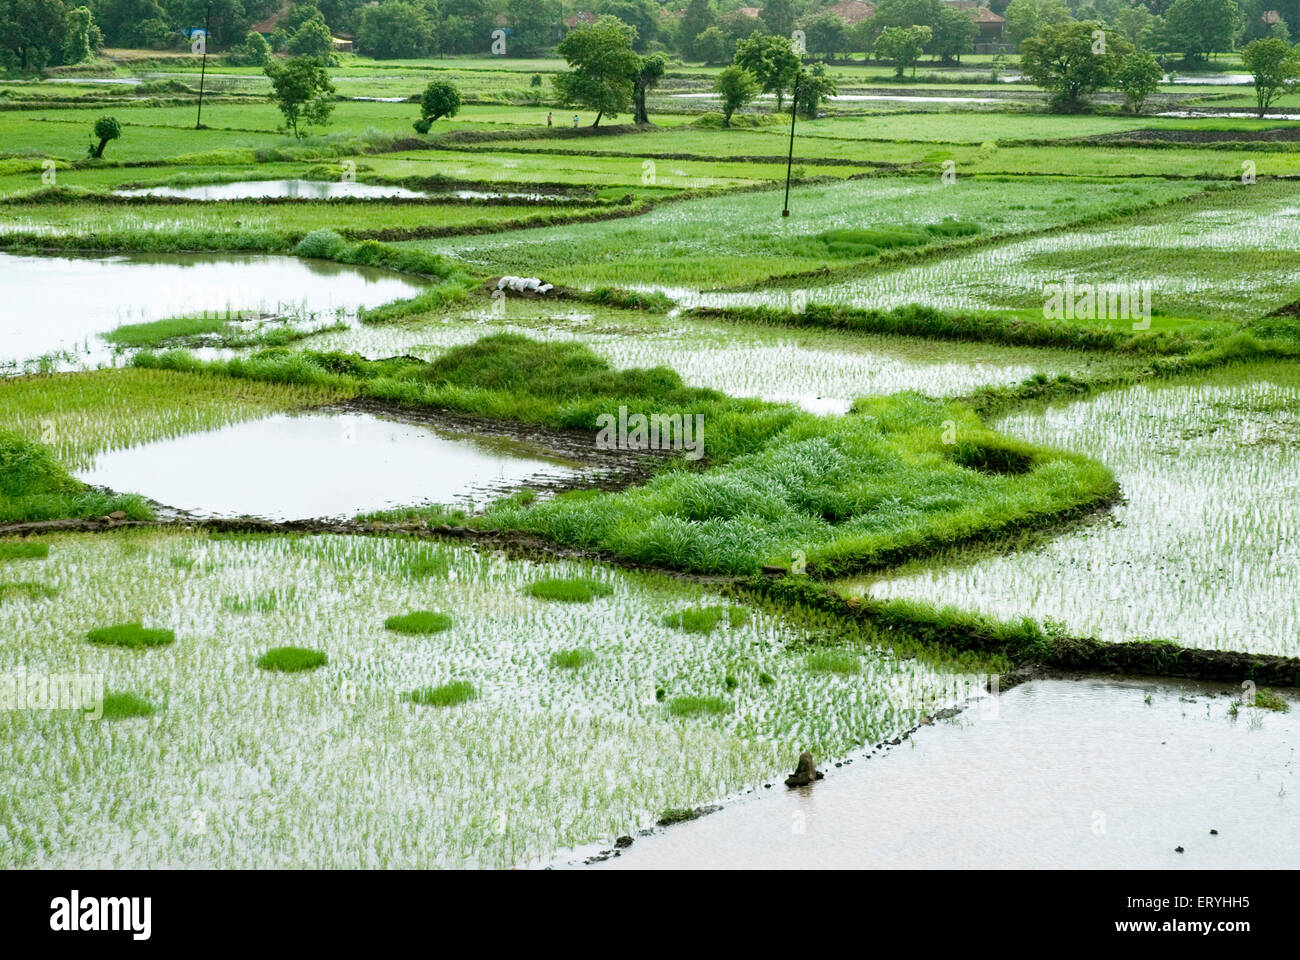 Monsoon and paddy rice fields in chequered pattern ; Raigadh district ; Maharashtra ; India - Stock Image